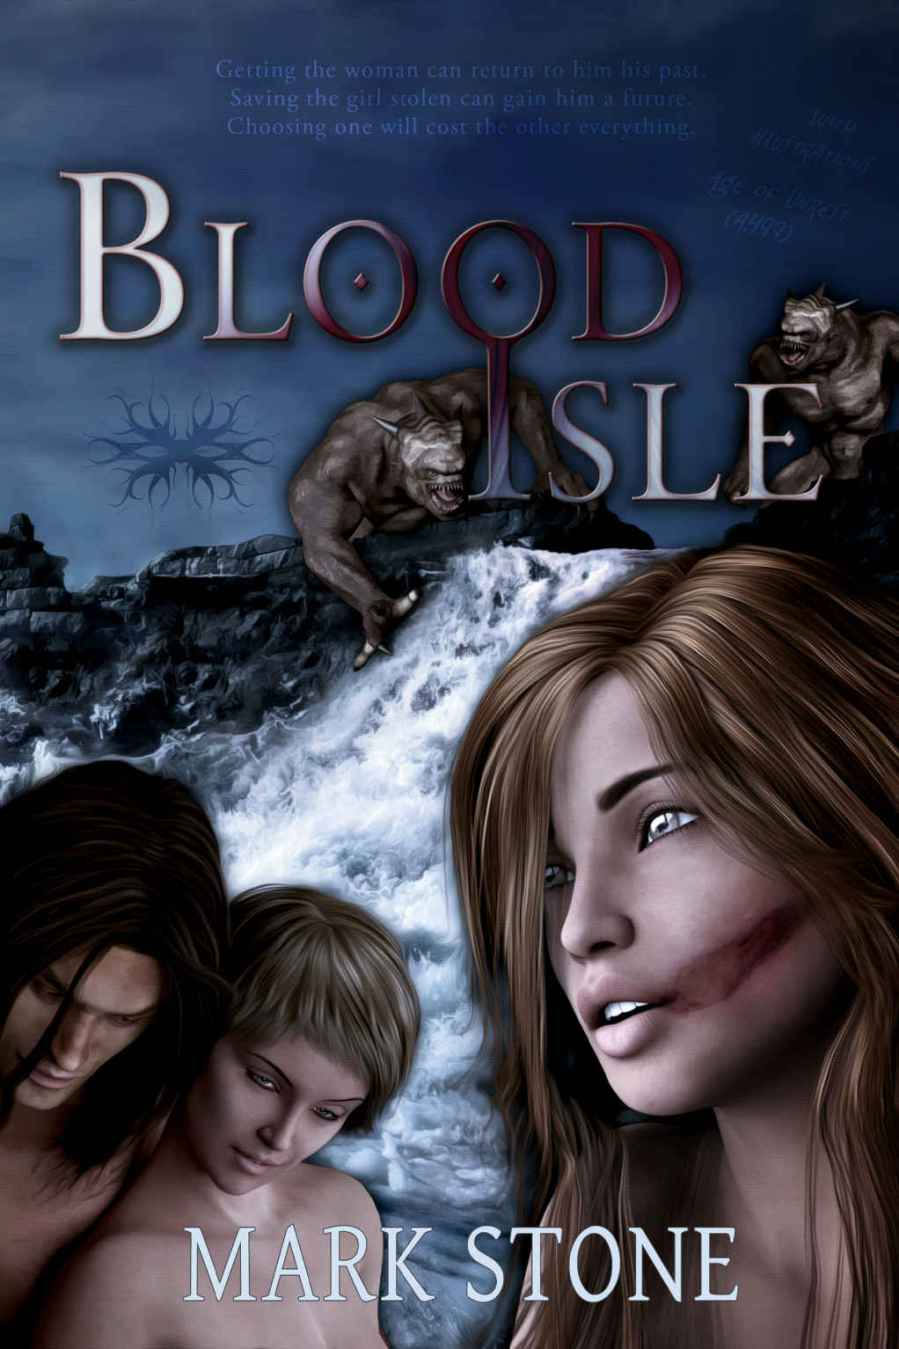 The beautiful cover of Blood Isle by Mark Stone